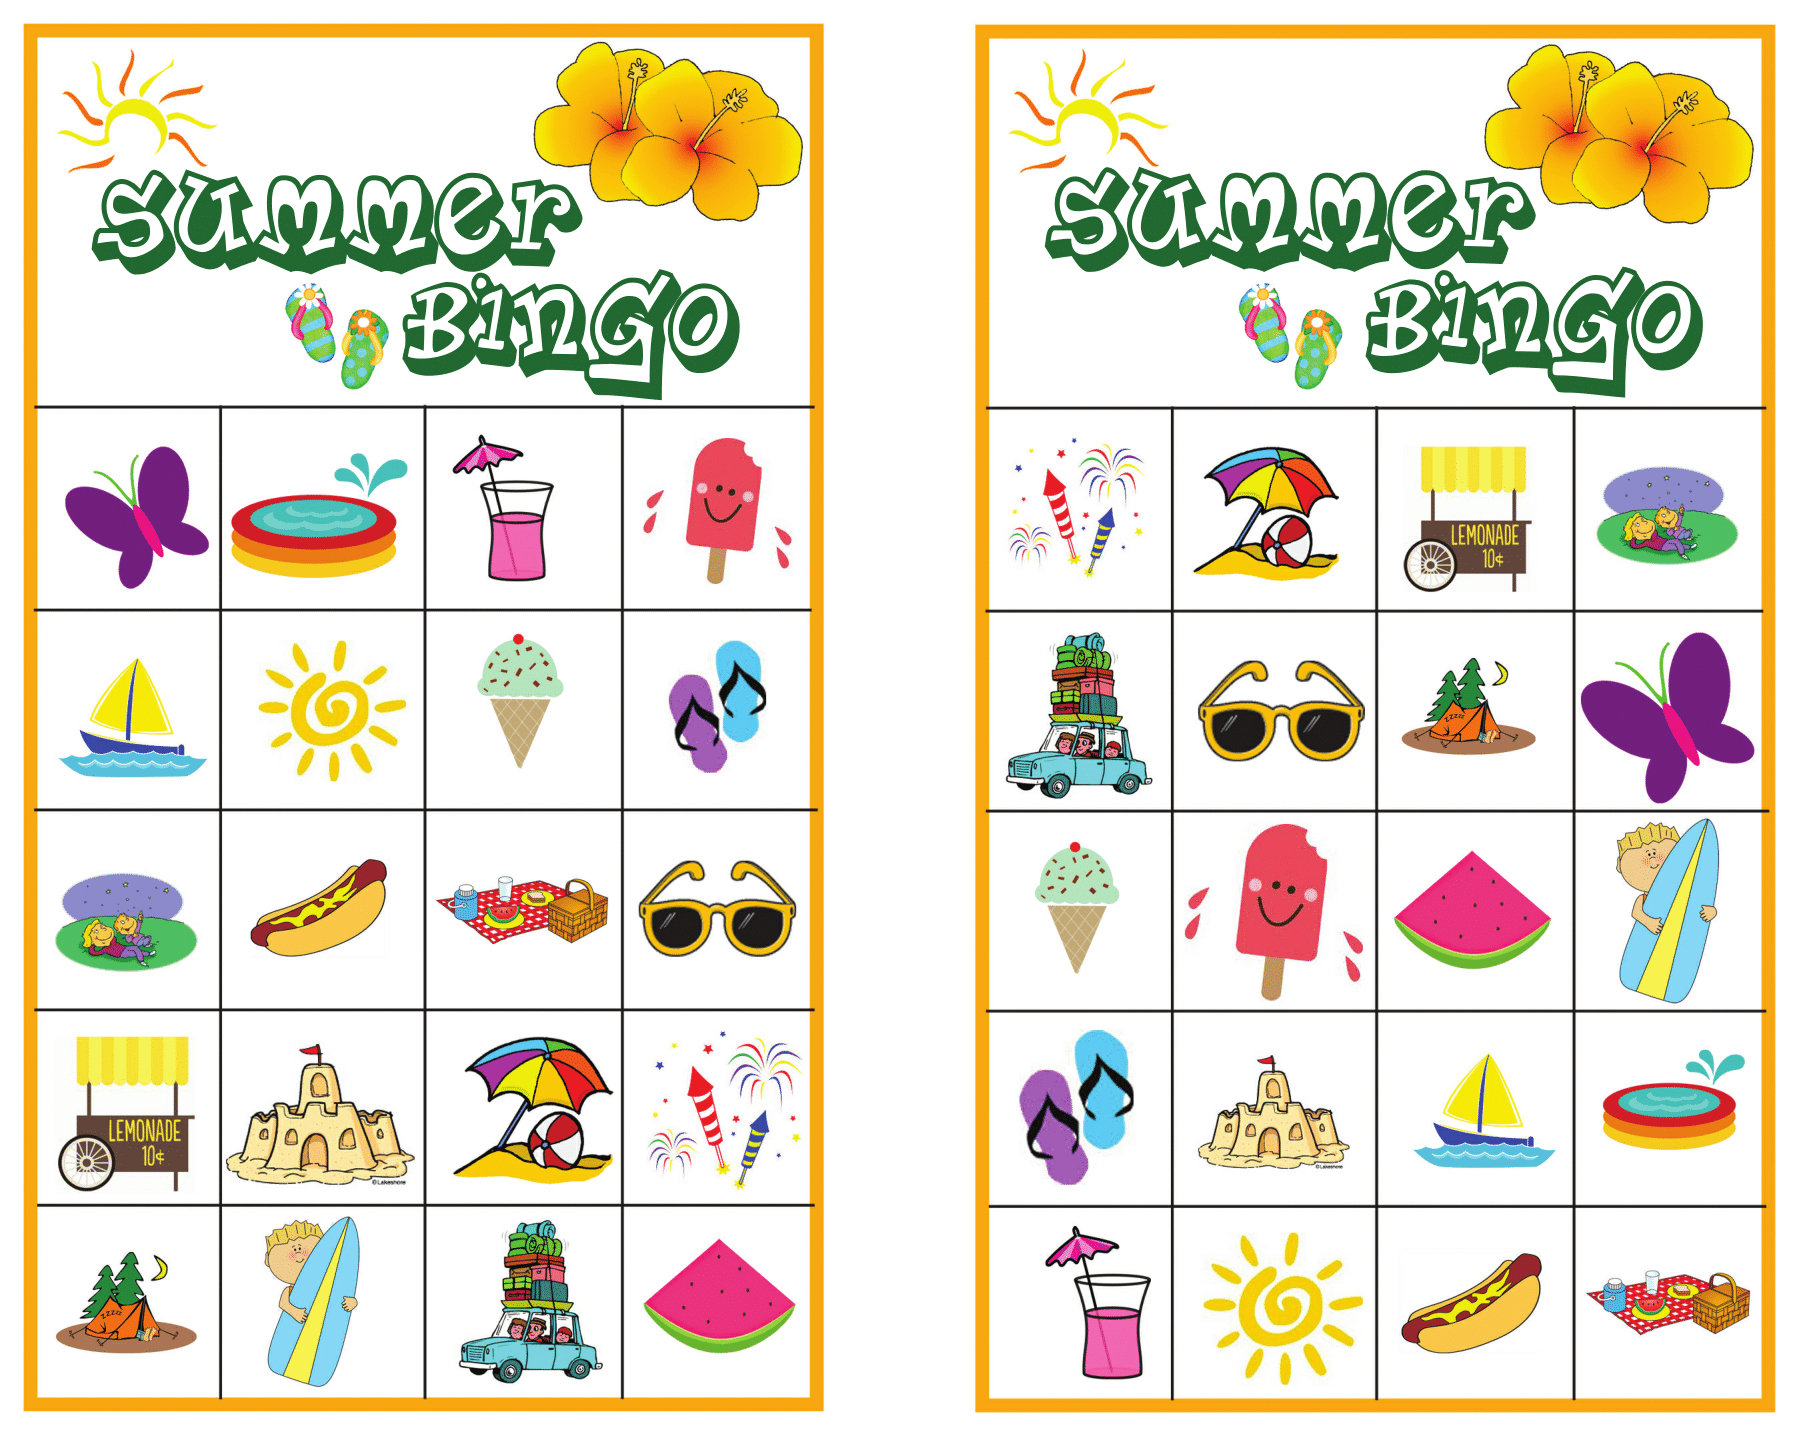 Summer Bingo Game With Free Printables | Bingo Games Free